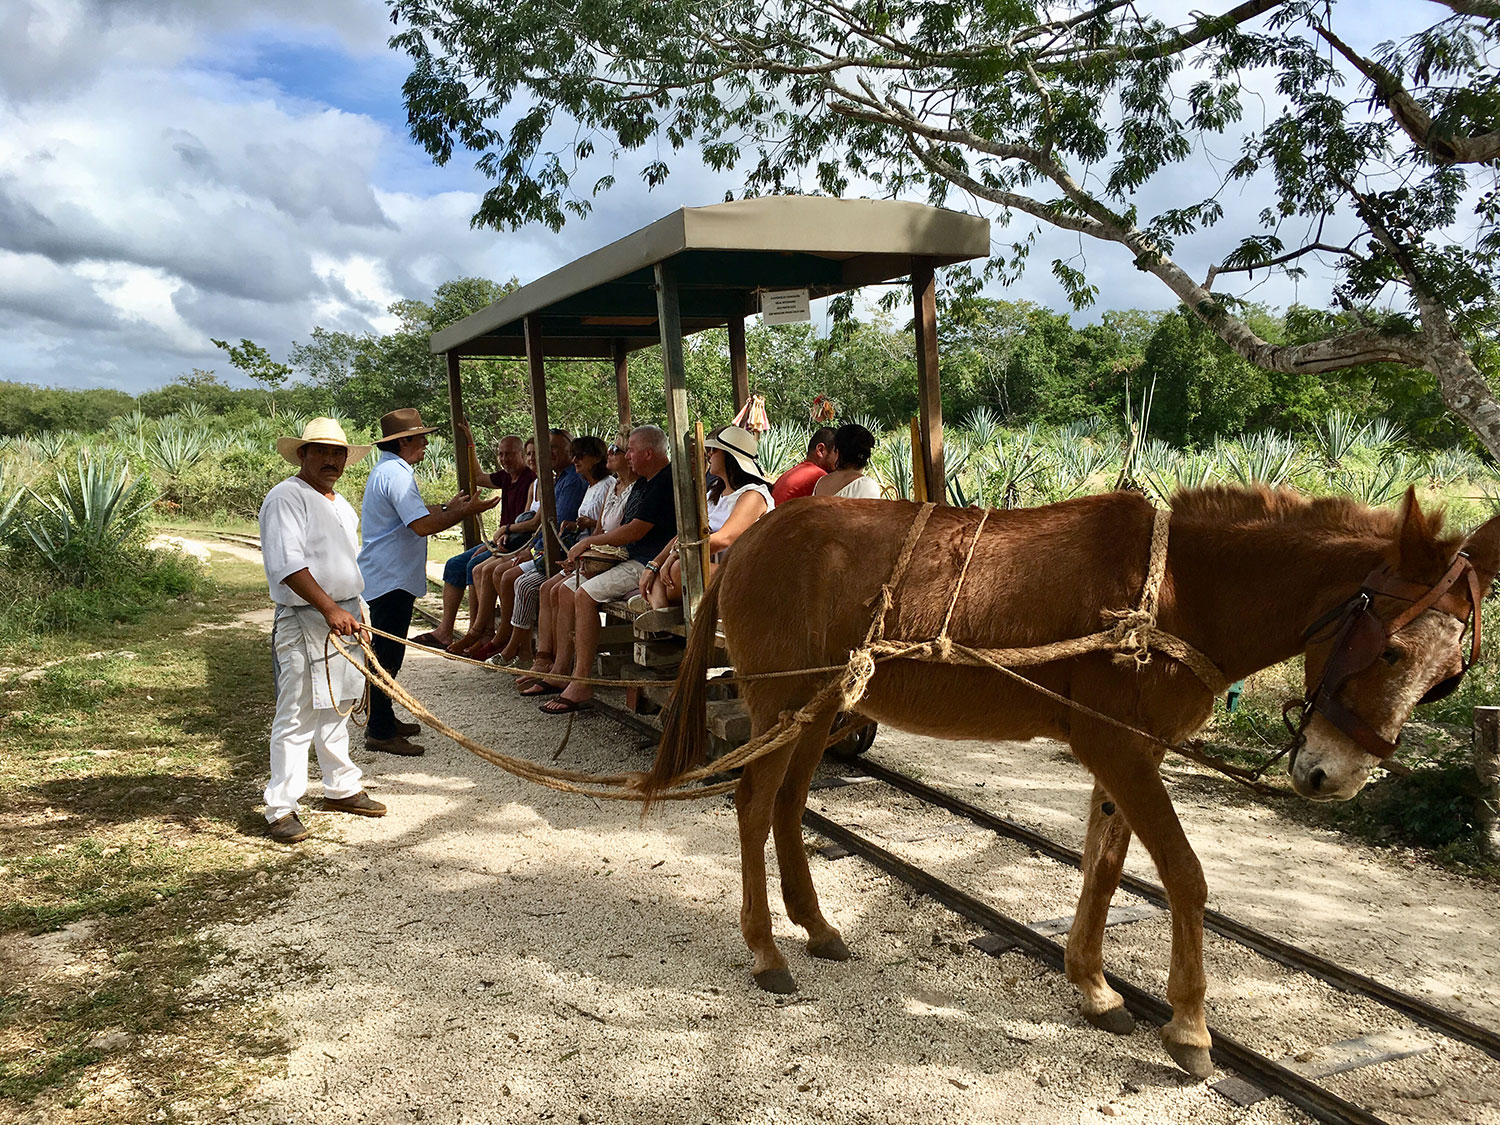 The wagon ride through the fields to the cenote.